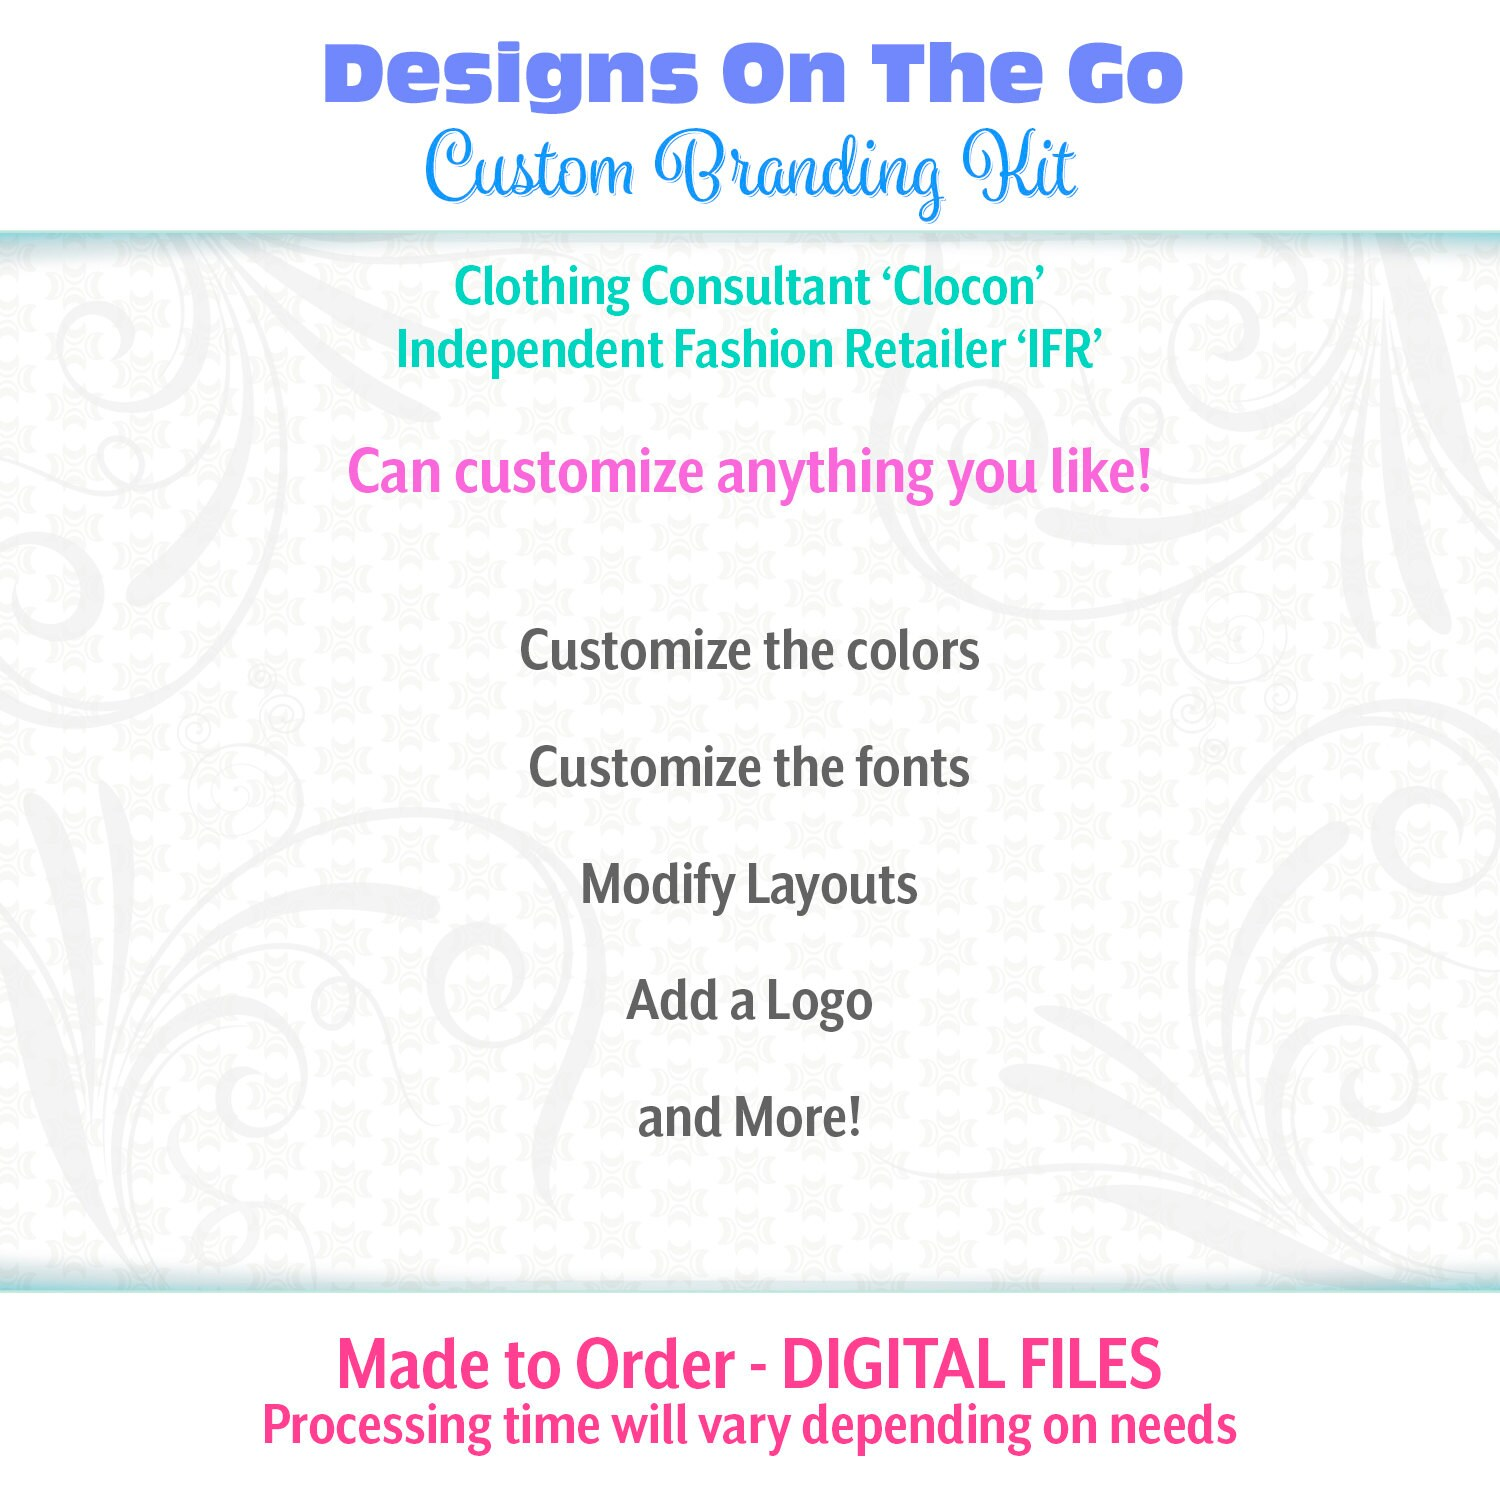 Hearts a whirl branding kit clocon ifr made to order marketing 500 magicingreecefo Choice Image